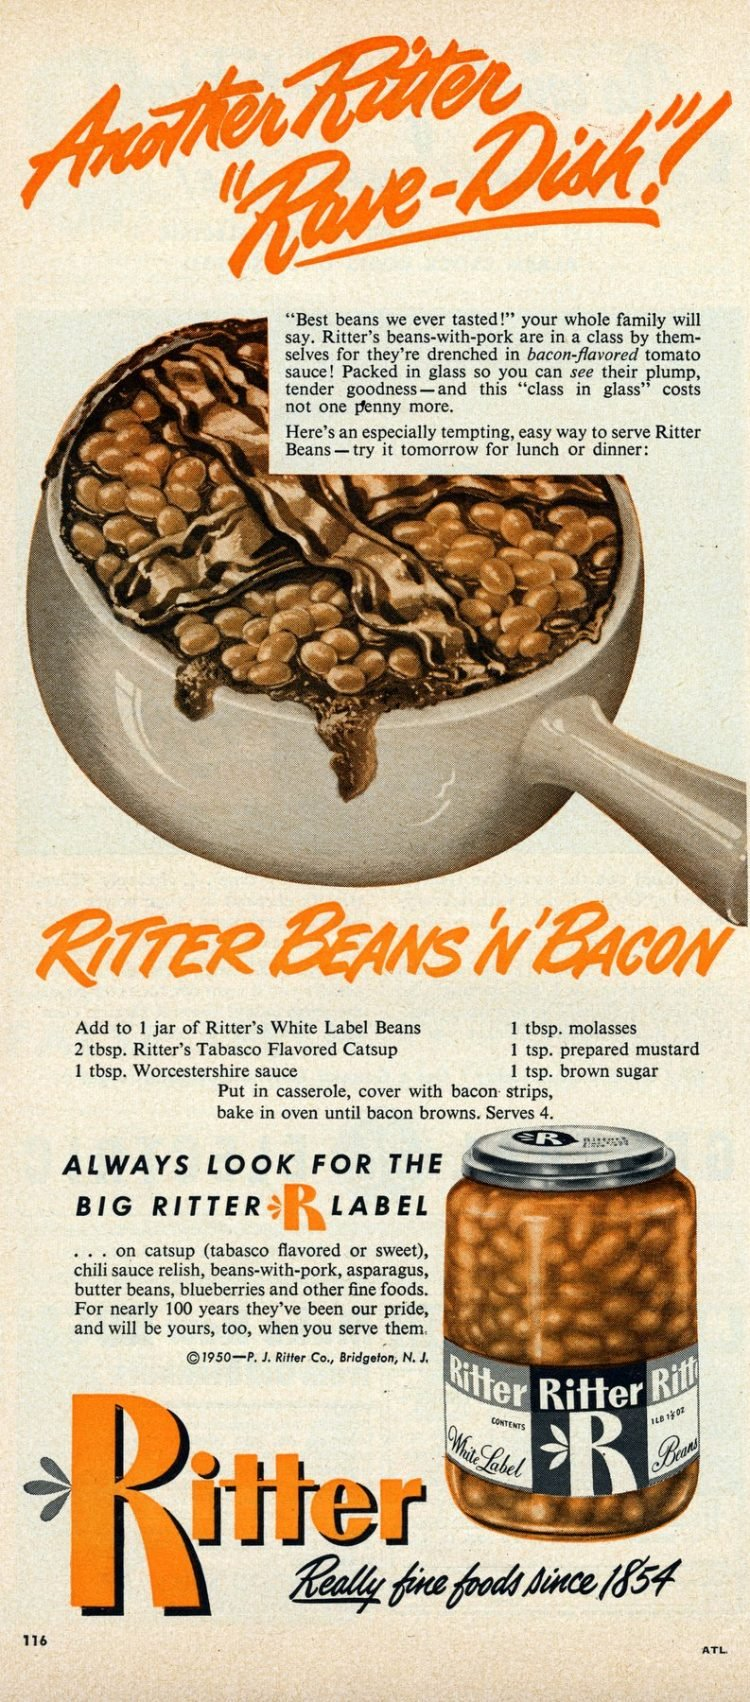 Vintage recipe - Ritter baked beans 'n' bacon (1950)